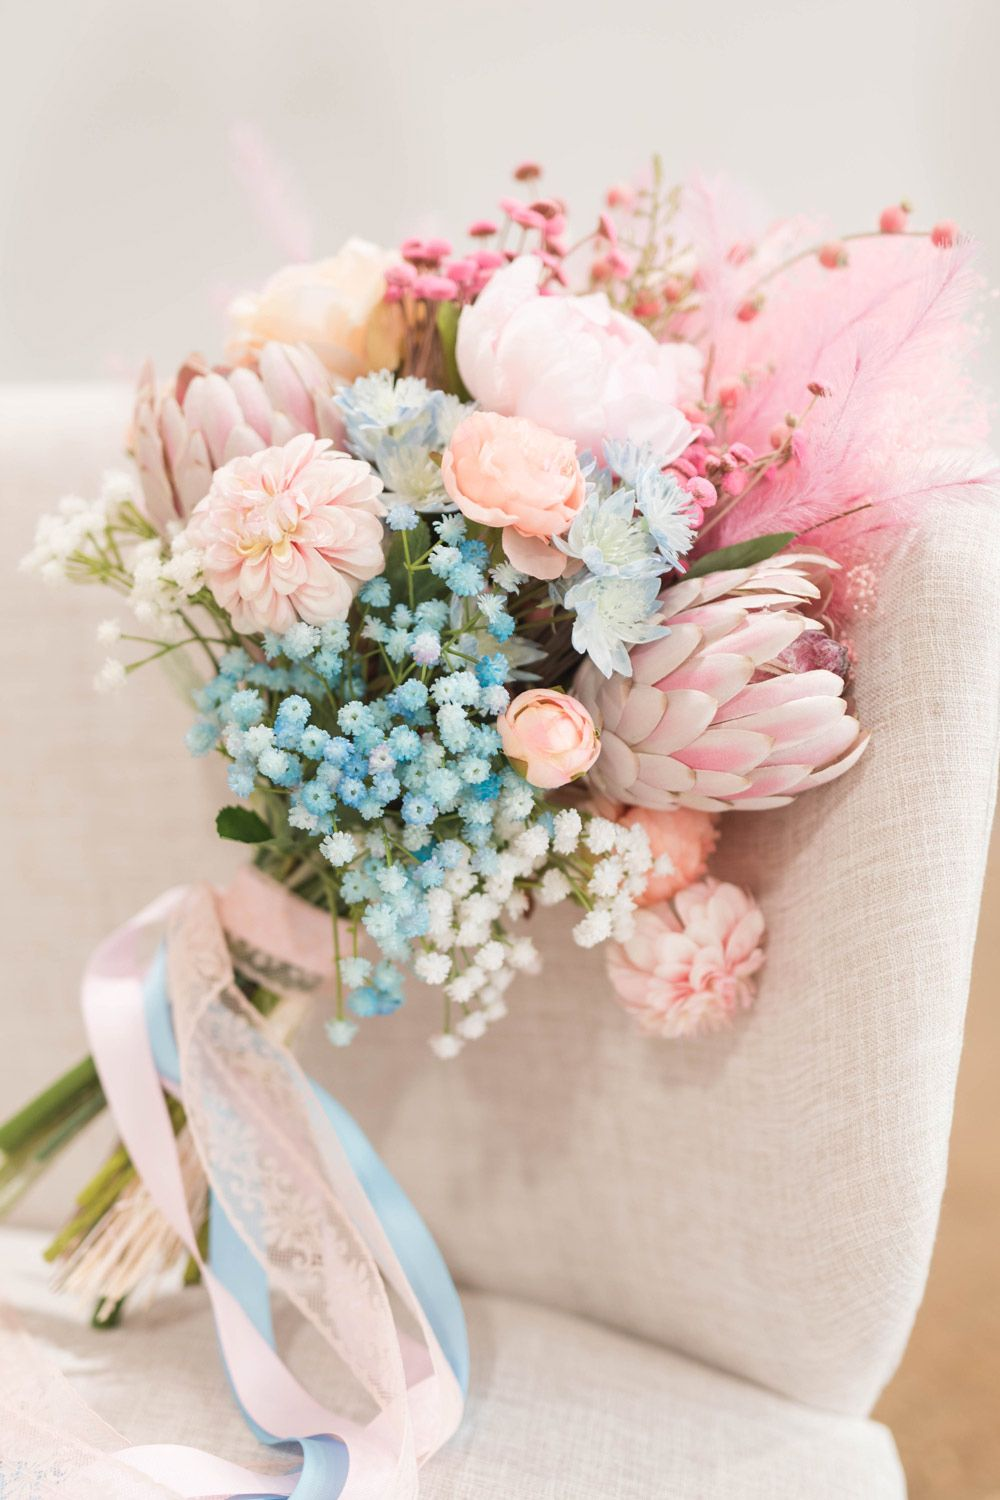 Get The Look For Your Pink And Blue Wedding With Cotton Candy Colored Flowers From Afloral Com I In 2020 Cotton Candy Wedding Silk Flowers Wedding Fake Flower Bouquet